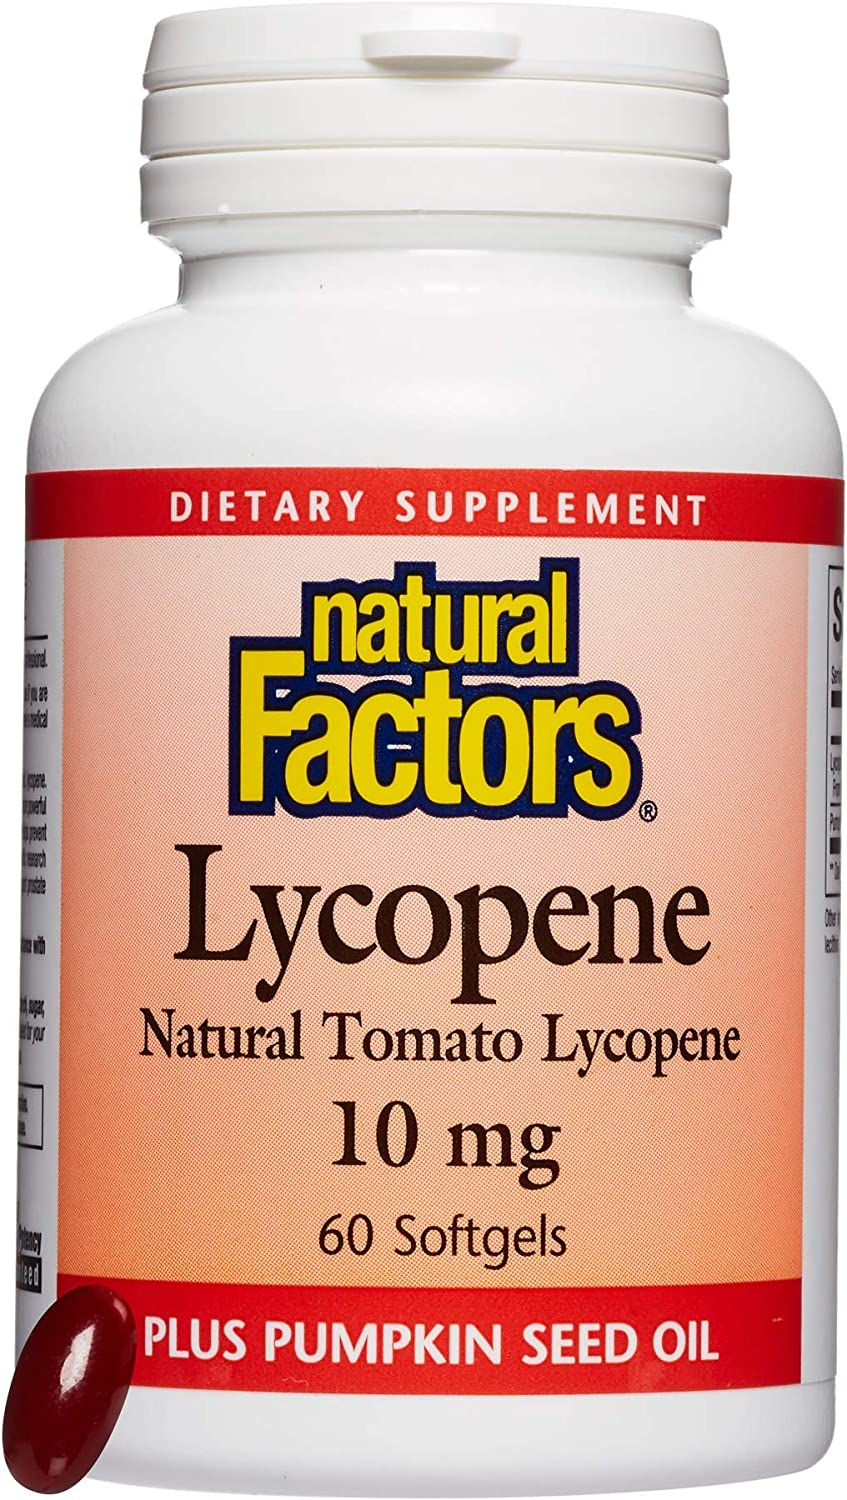 Natural Factors Seasonal Wrap Introduction Lycopene 10 mg Help to Popularity Support Antioxidant Red